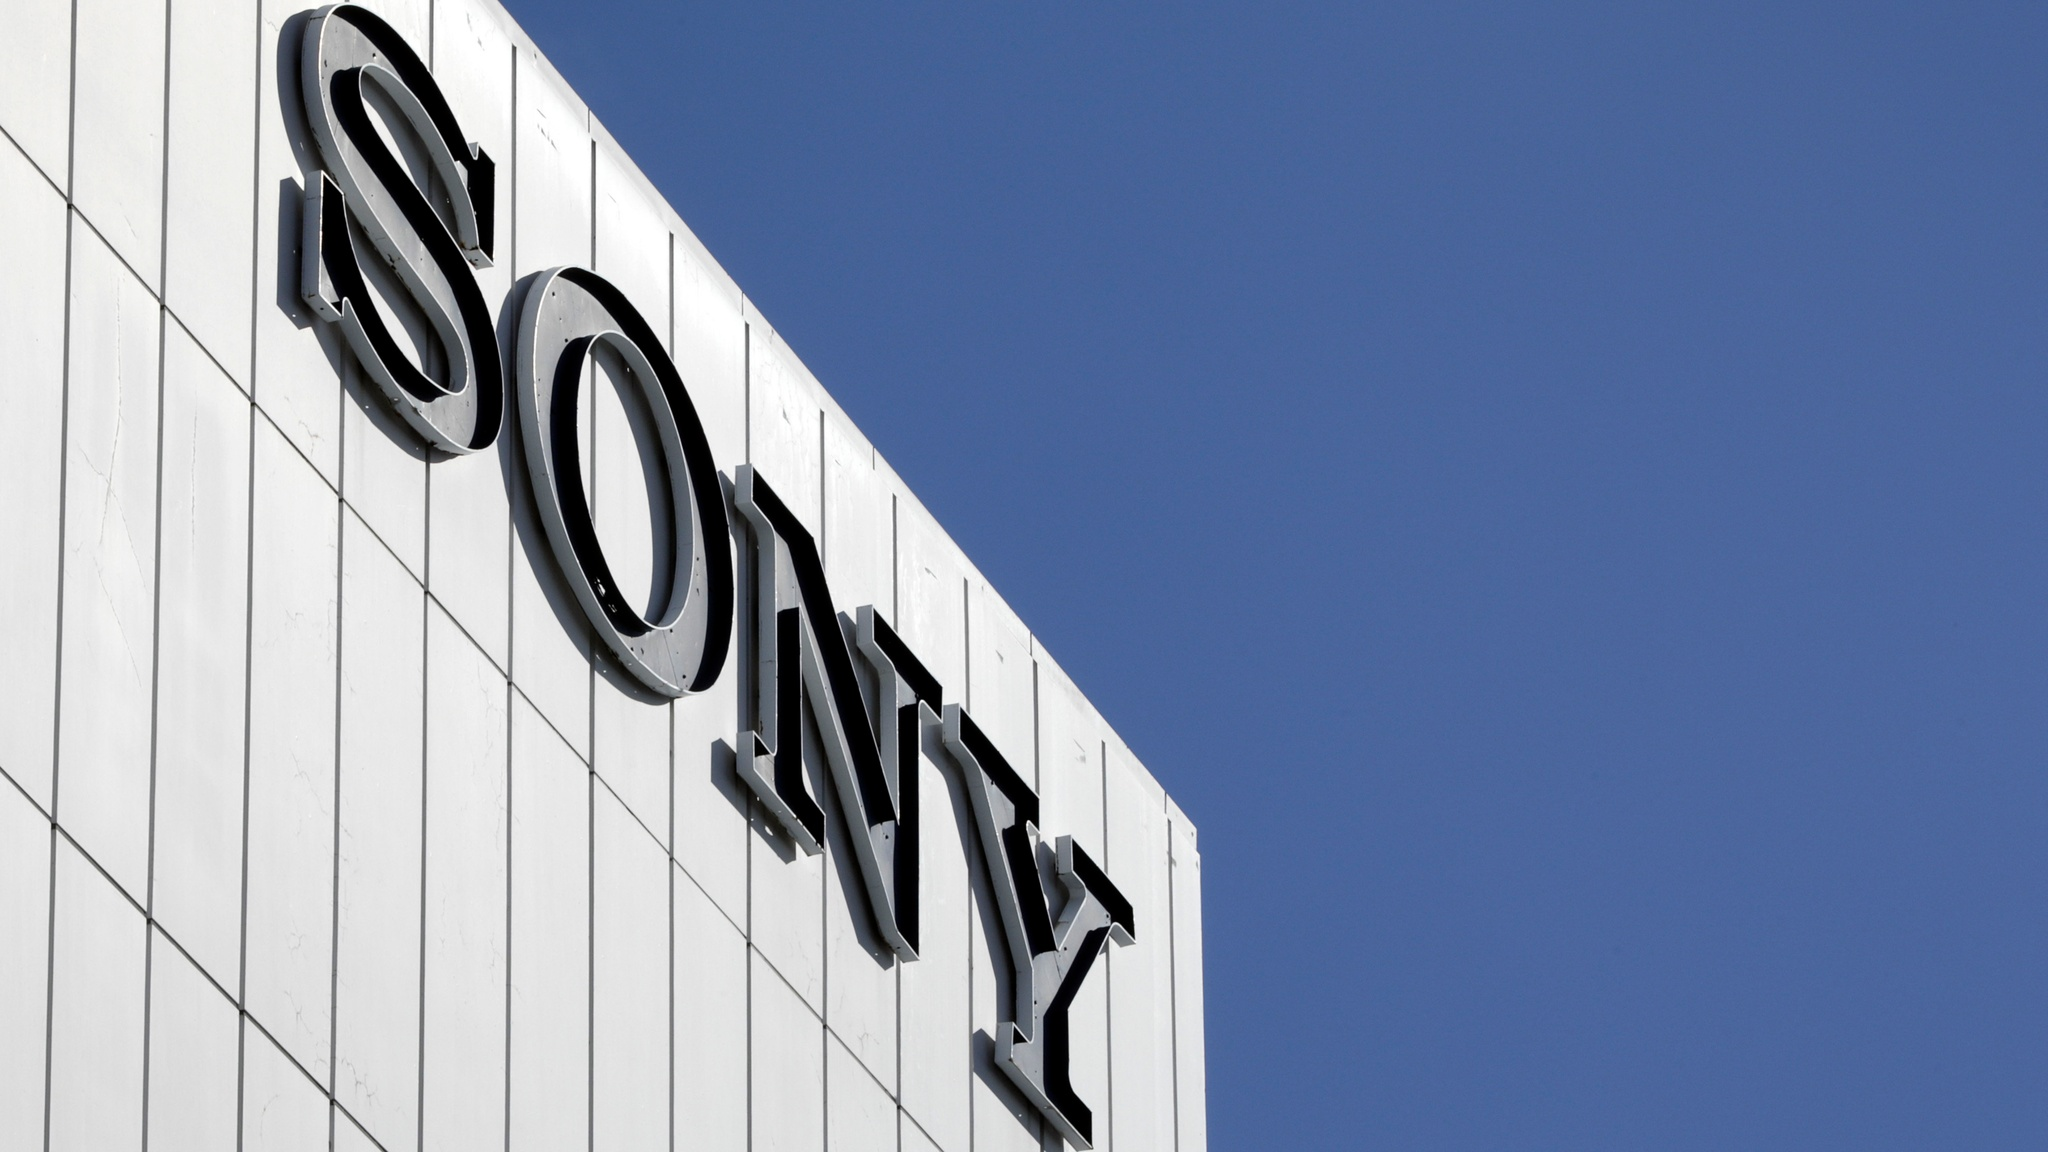 Sony lowers profit forecast on slowing PS4 sales | Financial Times